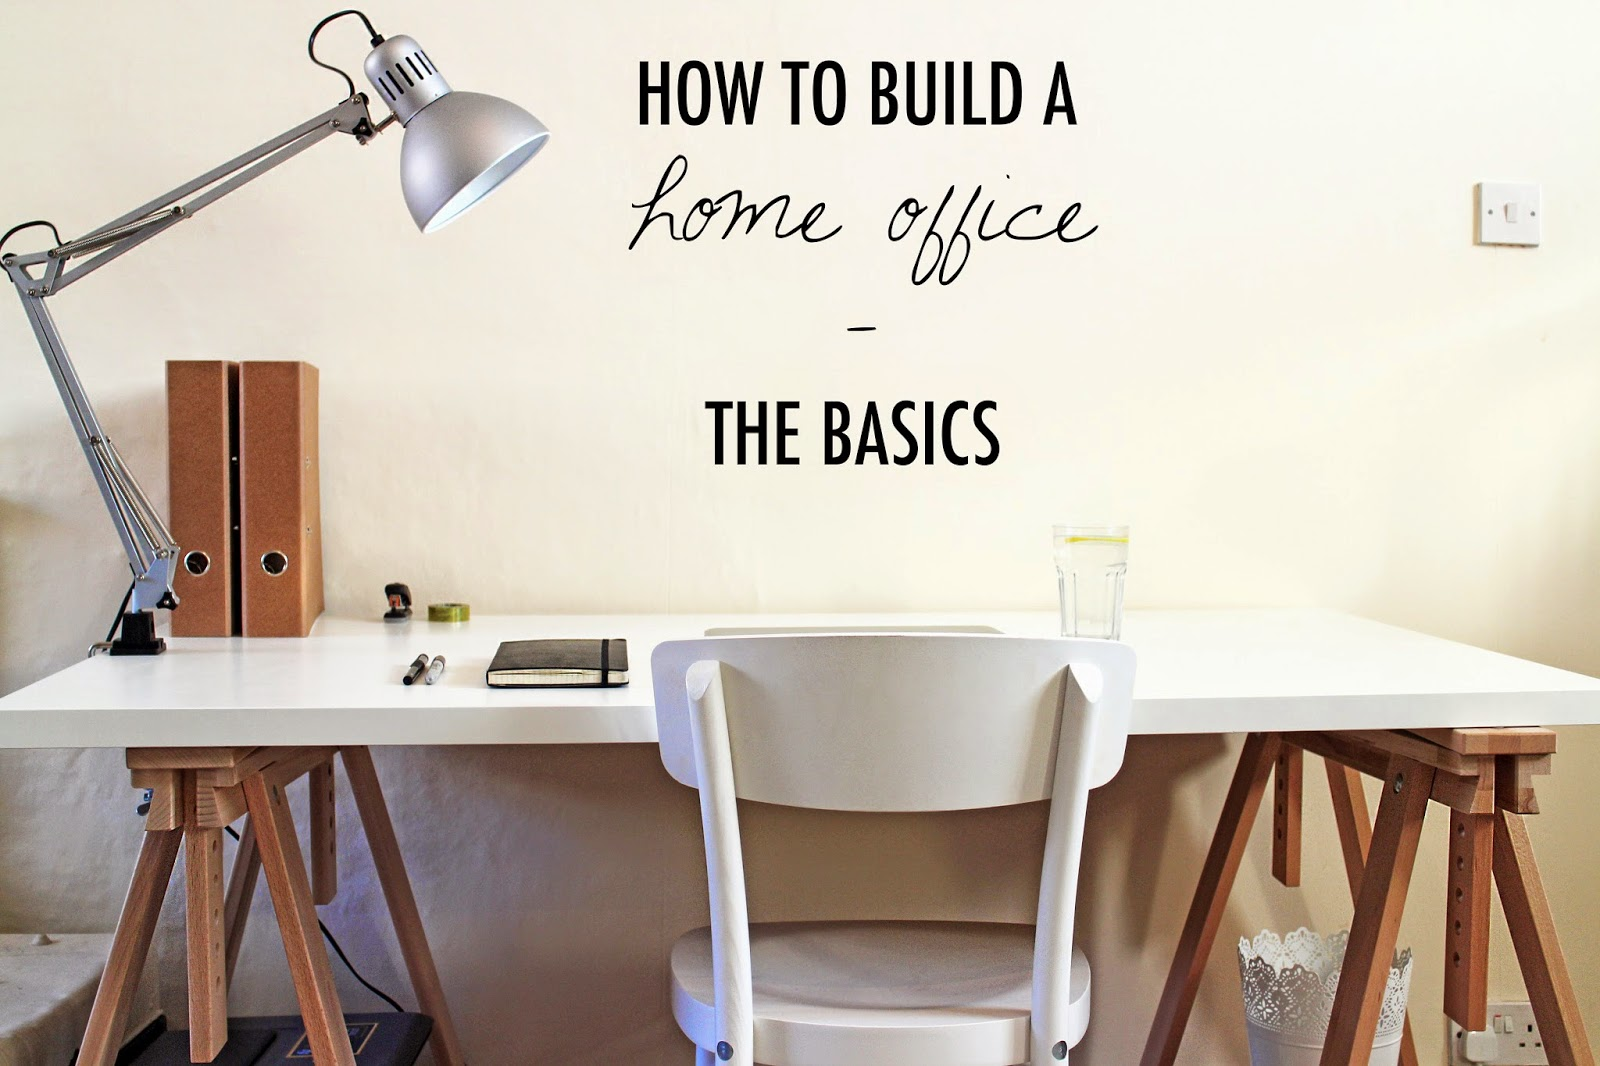 How To Build A Home Office - The Basics